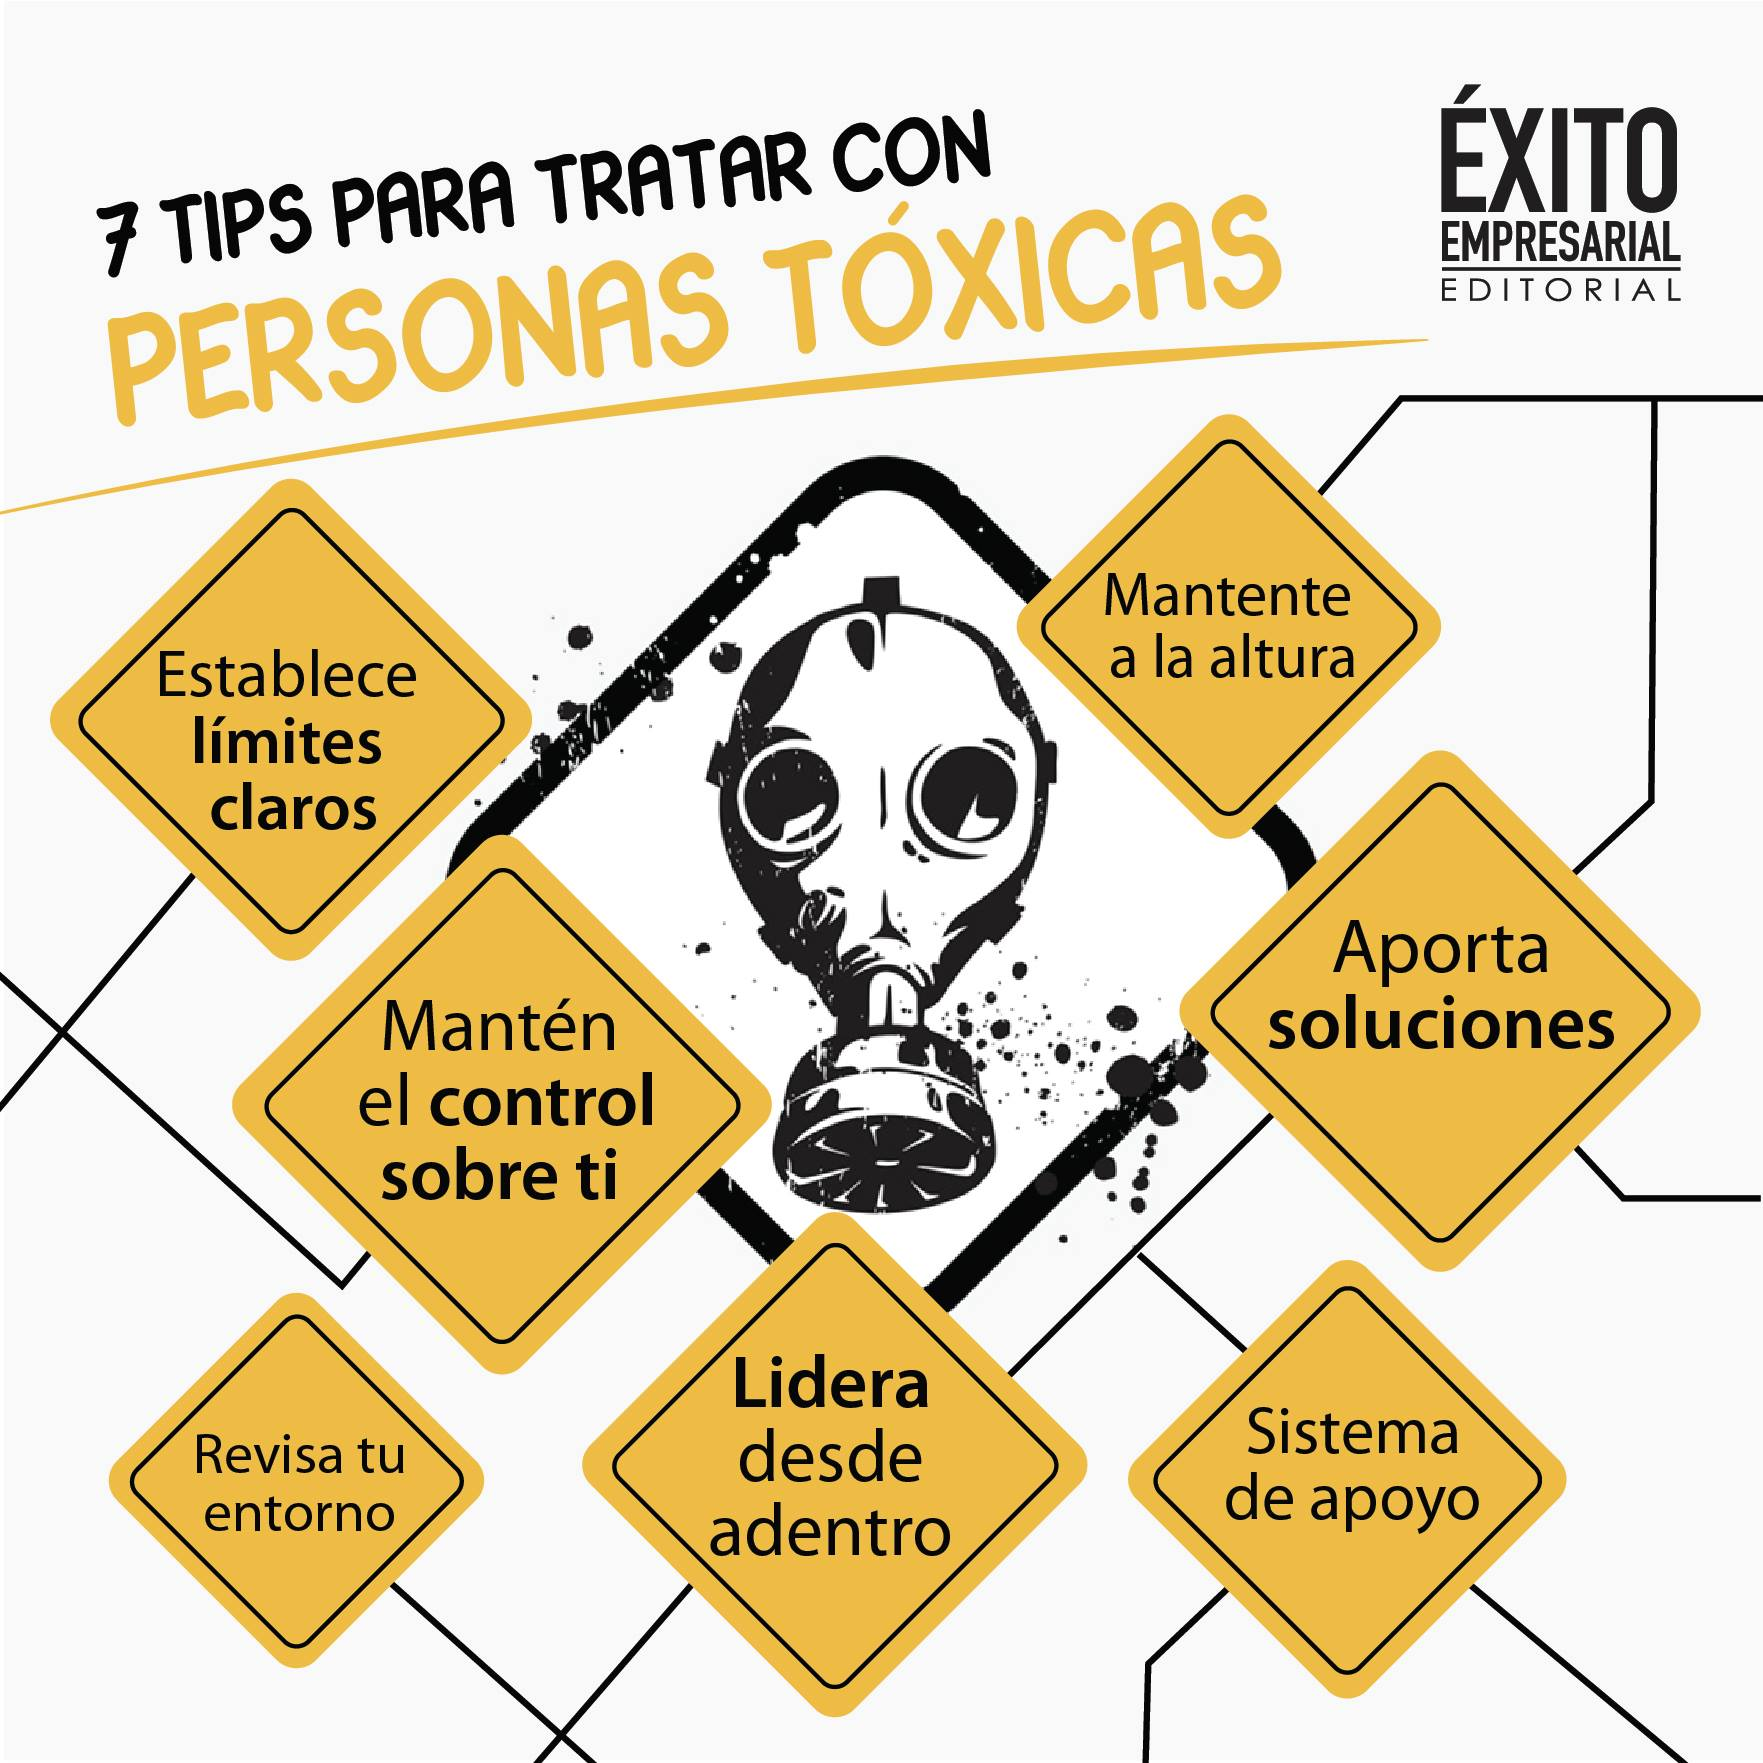 ¿CONOCES PERSONAS TÓXICAS?